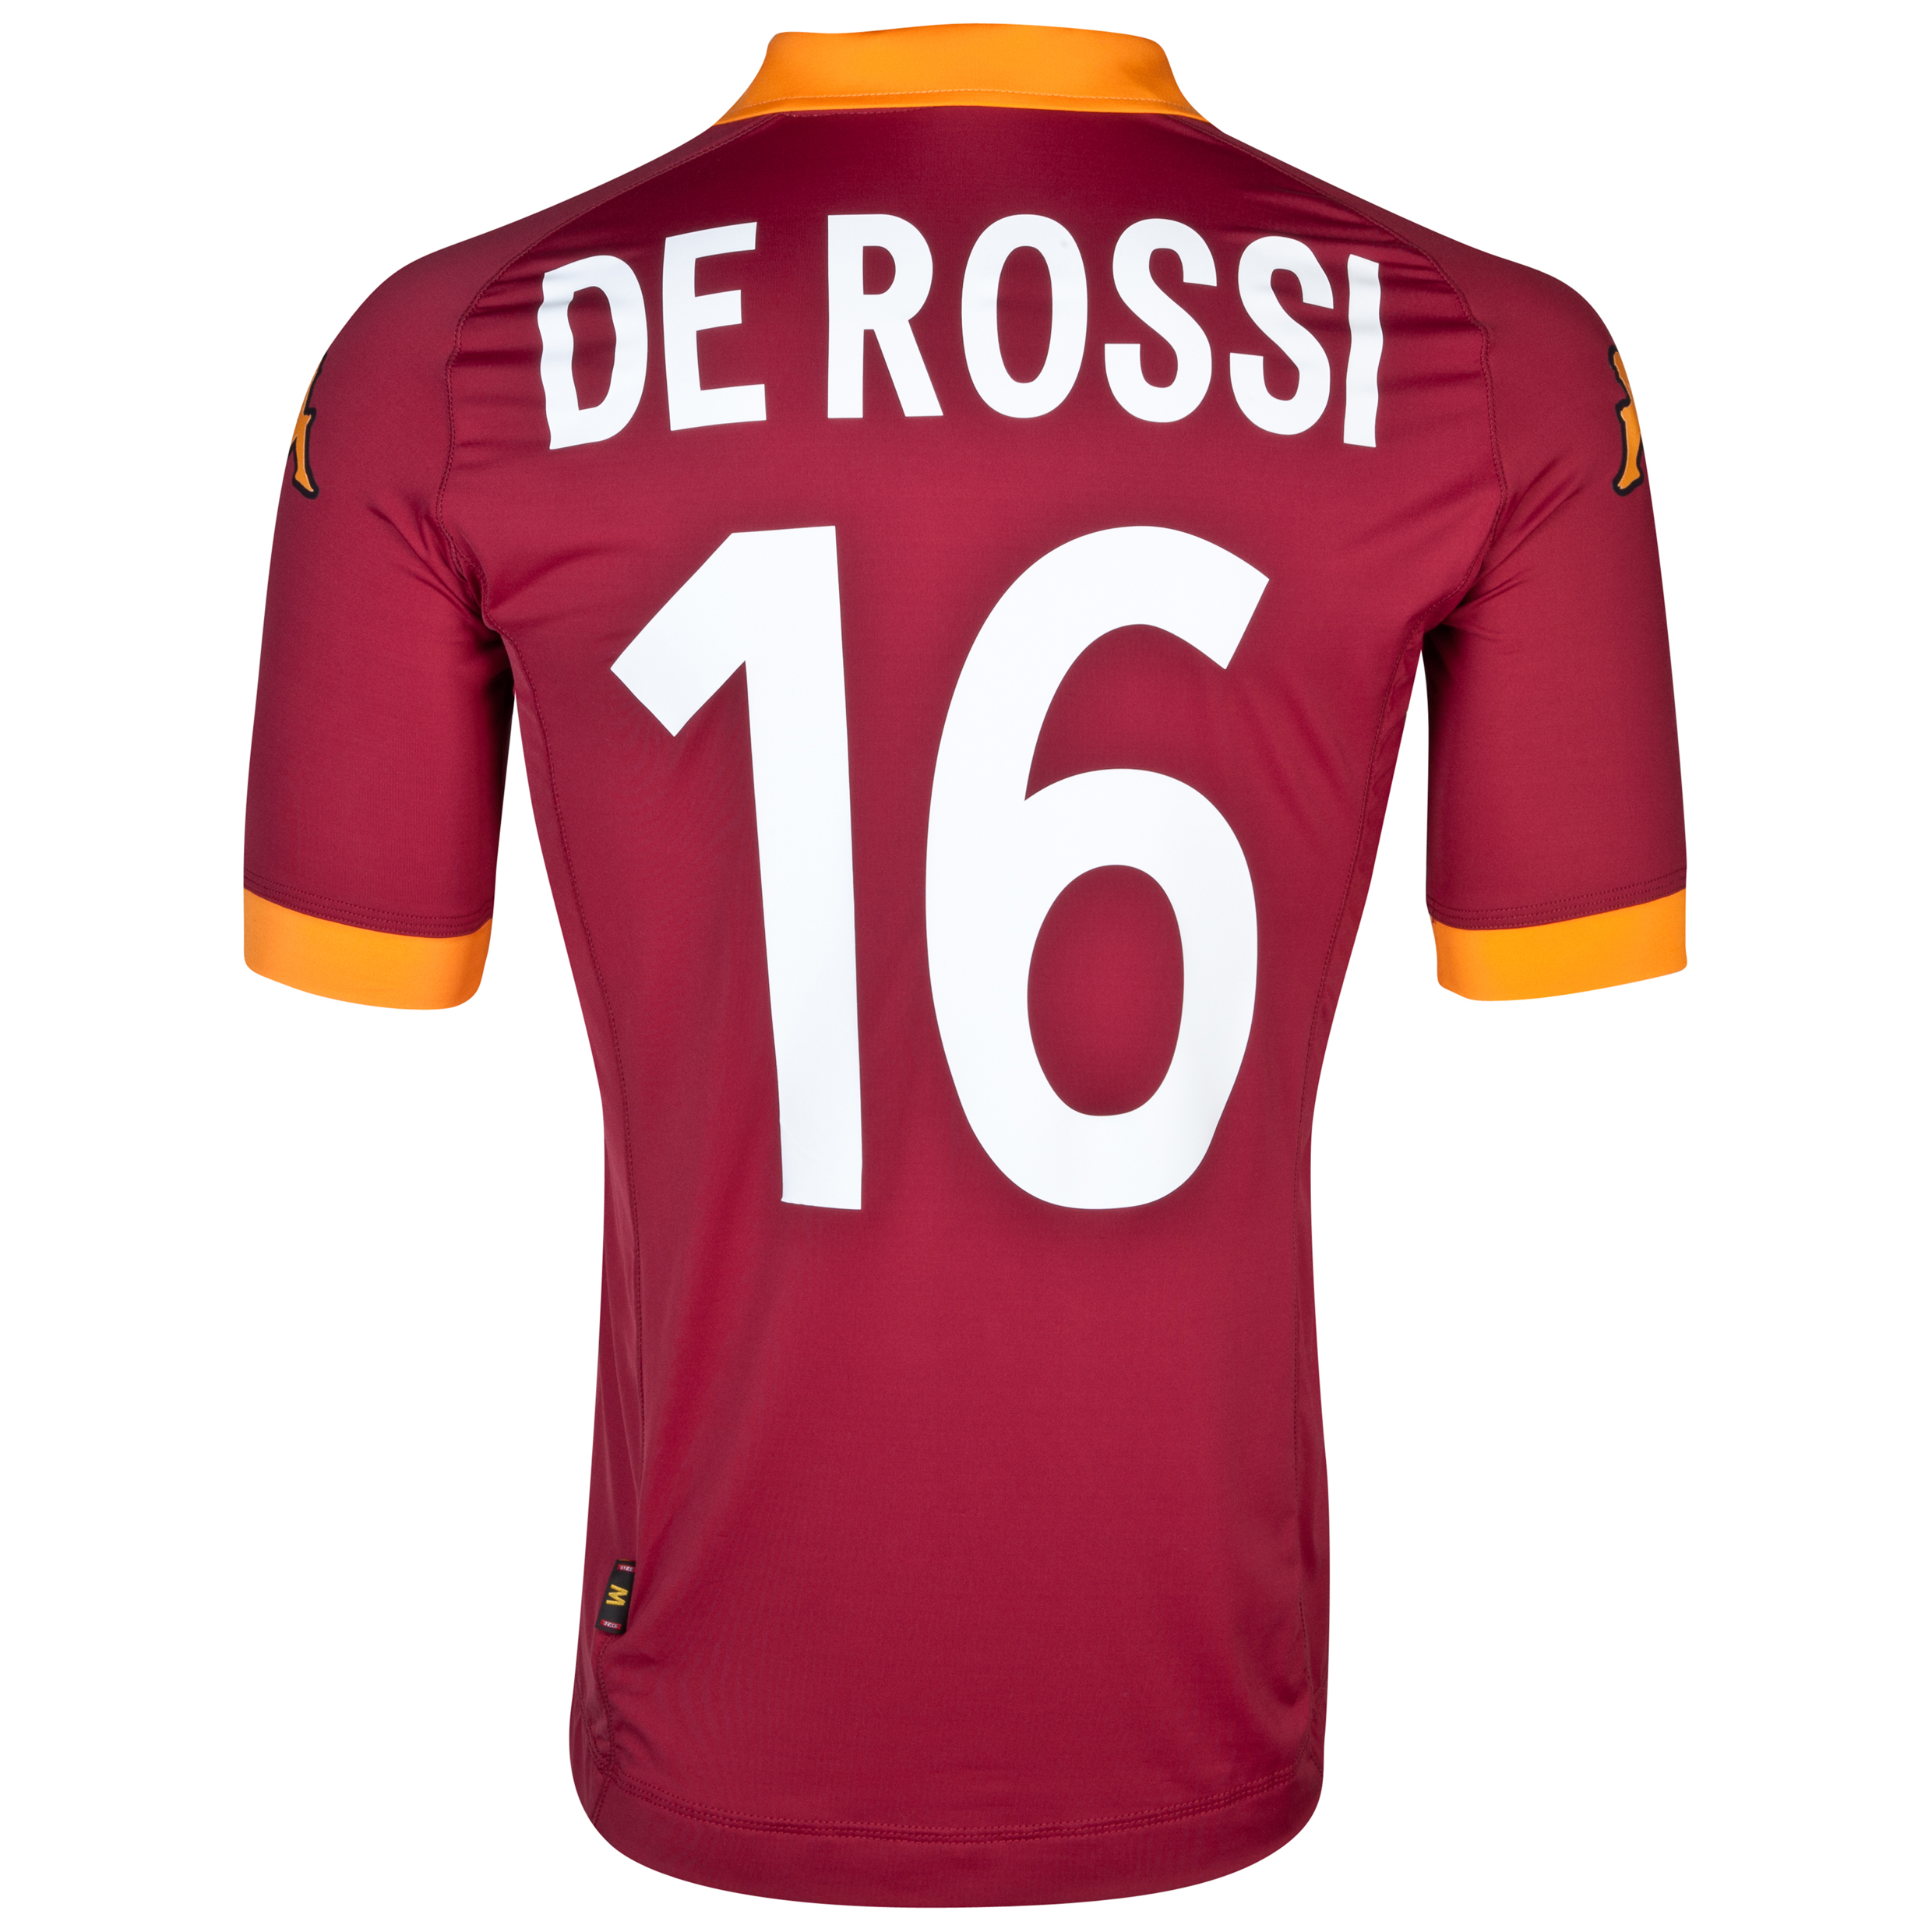 AS Roma Home Shirt 2012/13 with De Rossi 16 printing